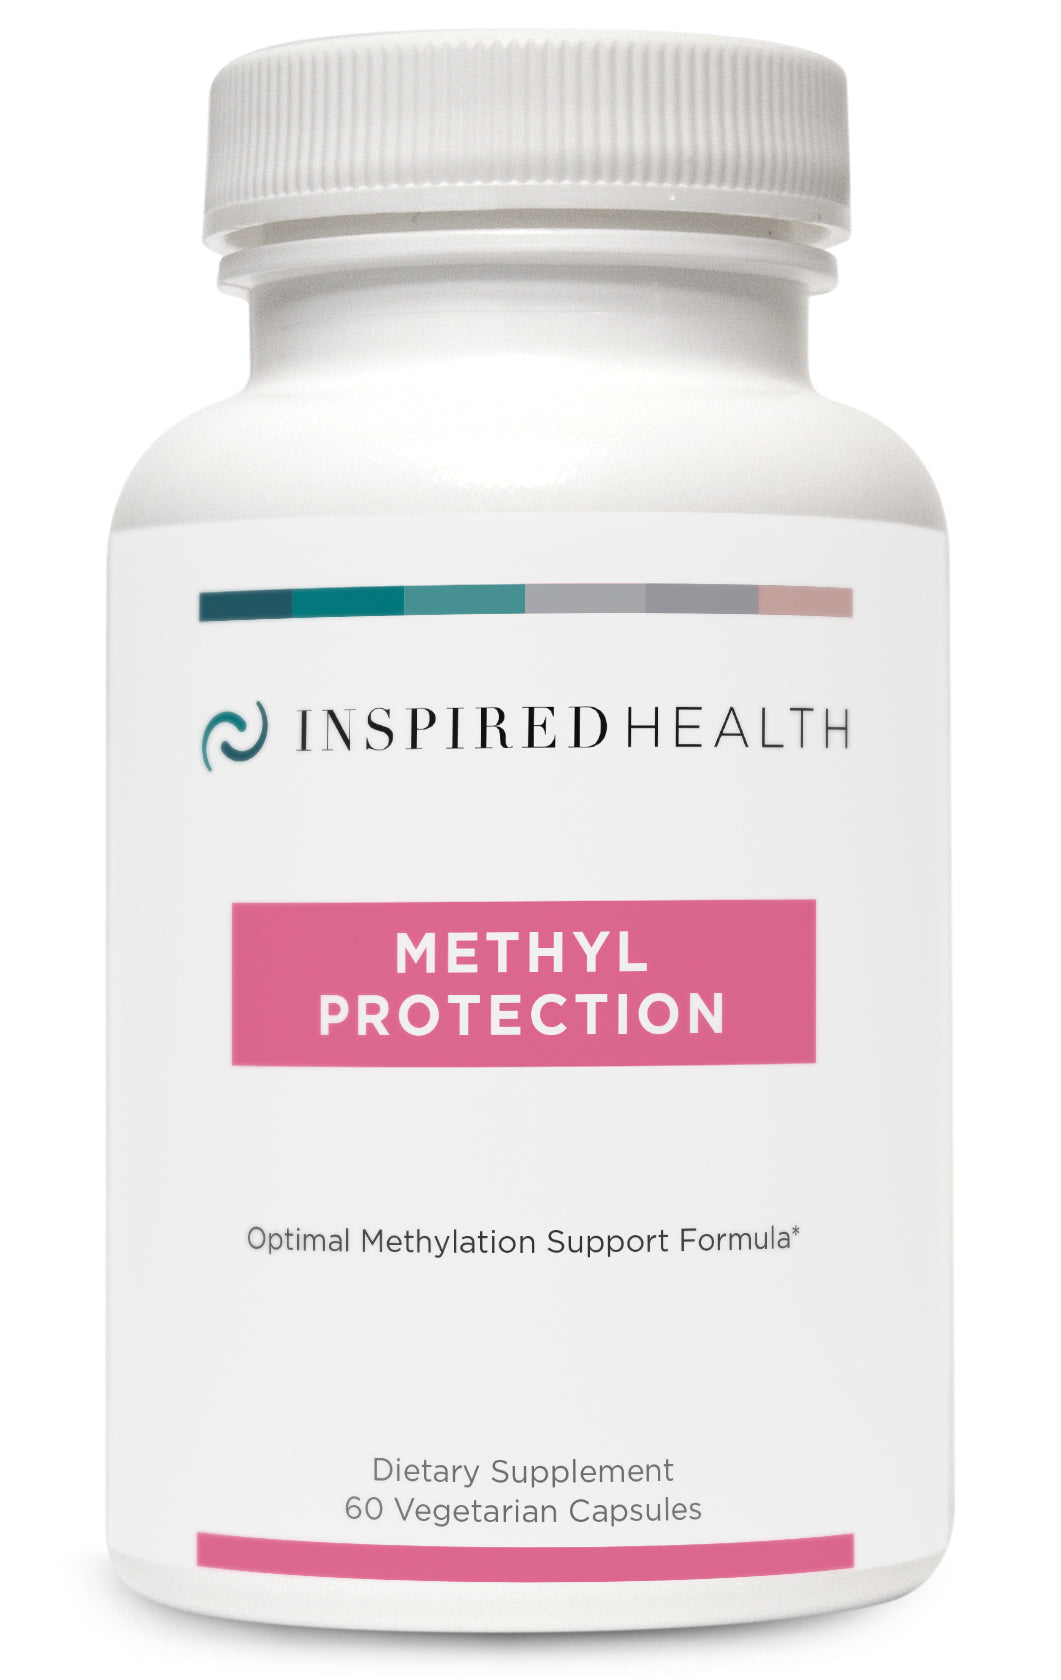 Methyl Protection - Inspired Health Apothecary - MTHFR